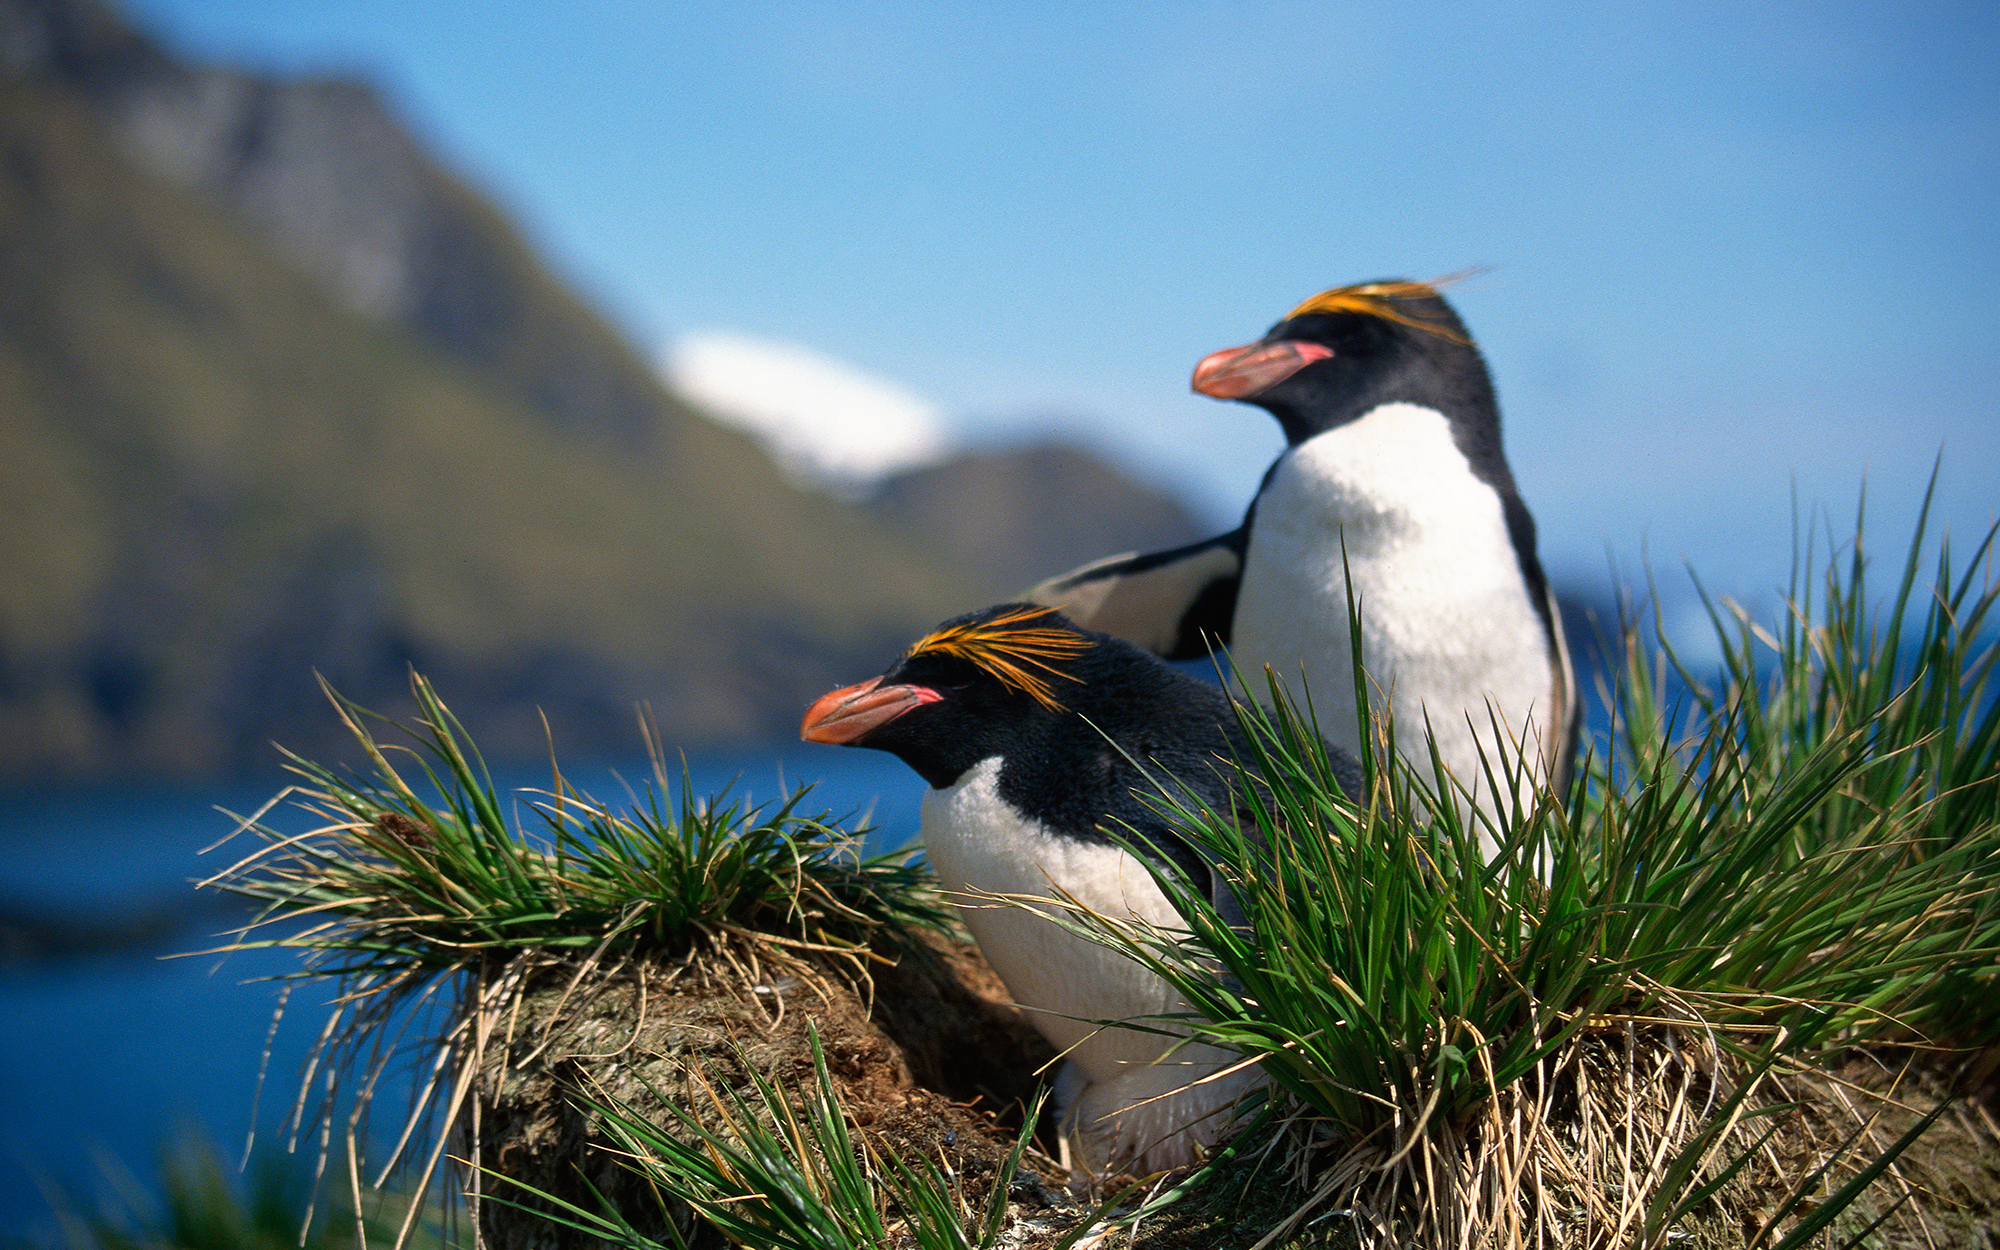 Where to See Penguins: Argentina